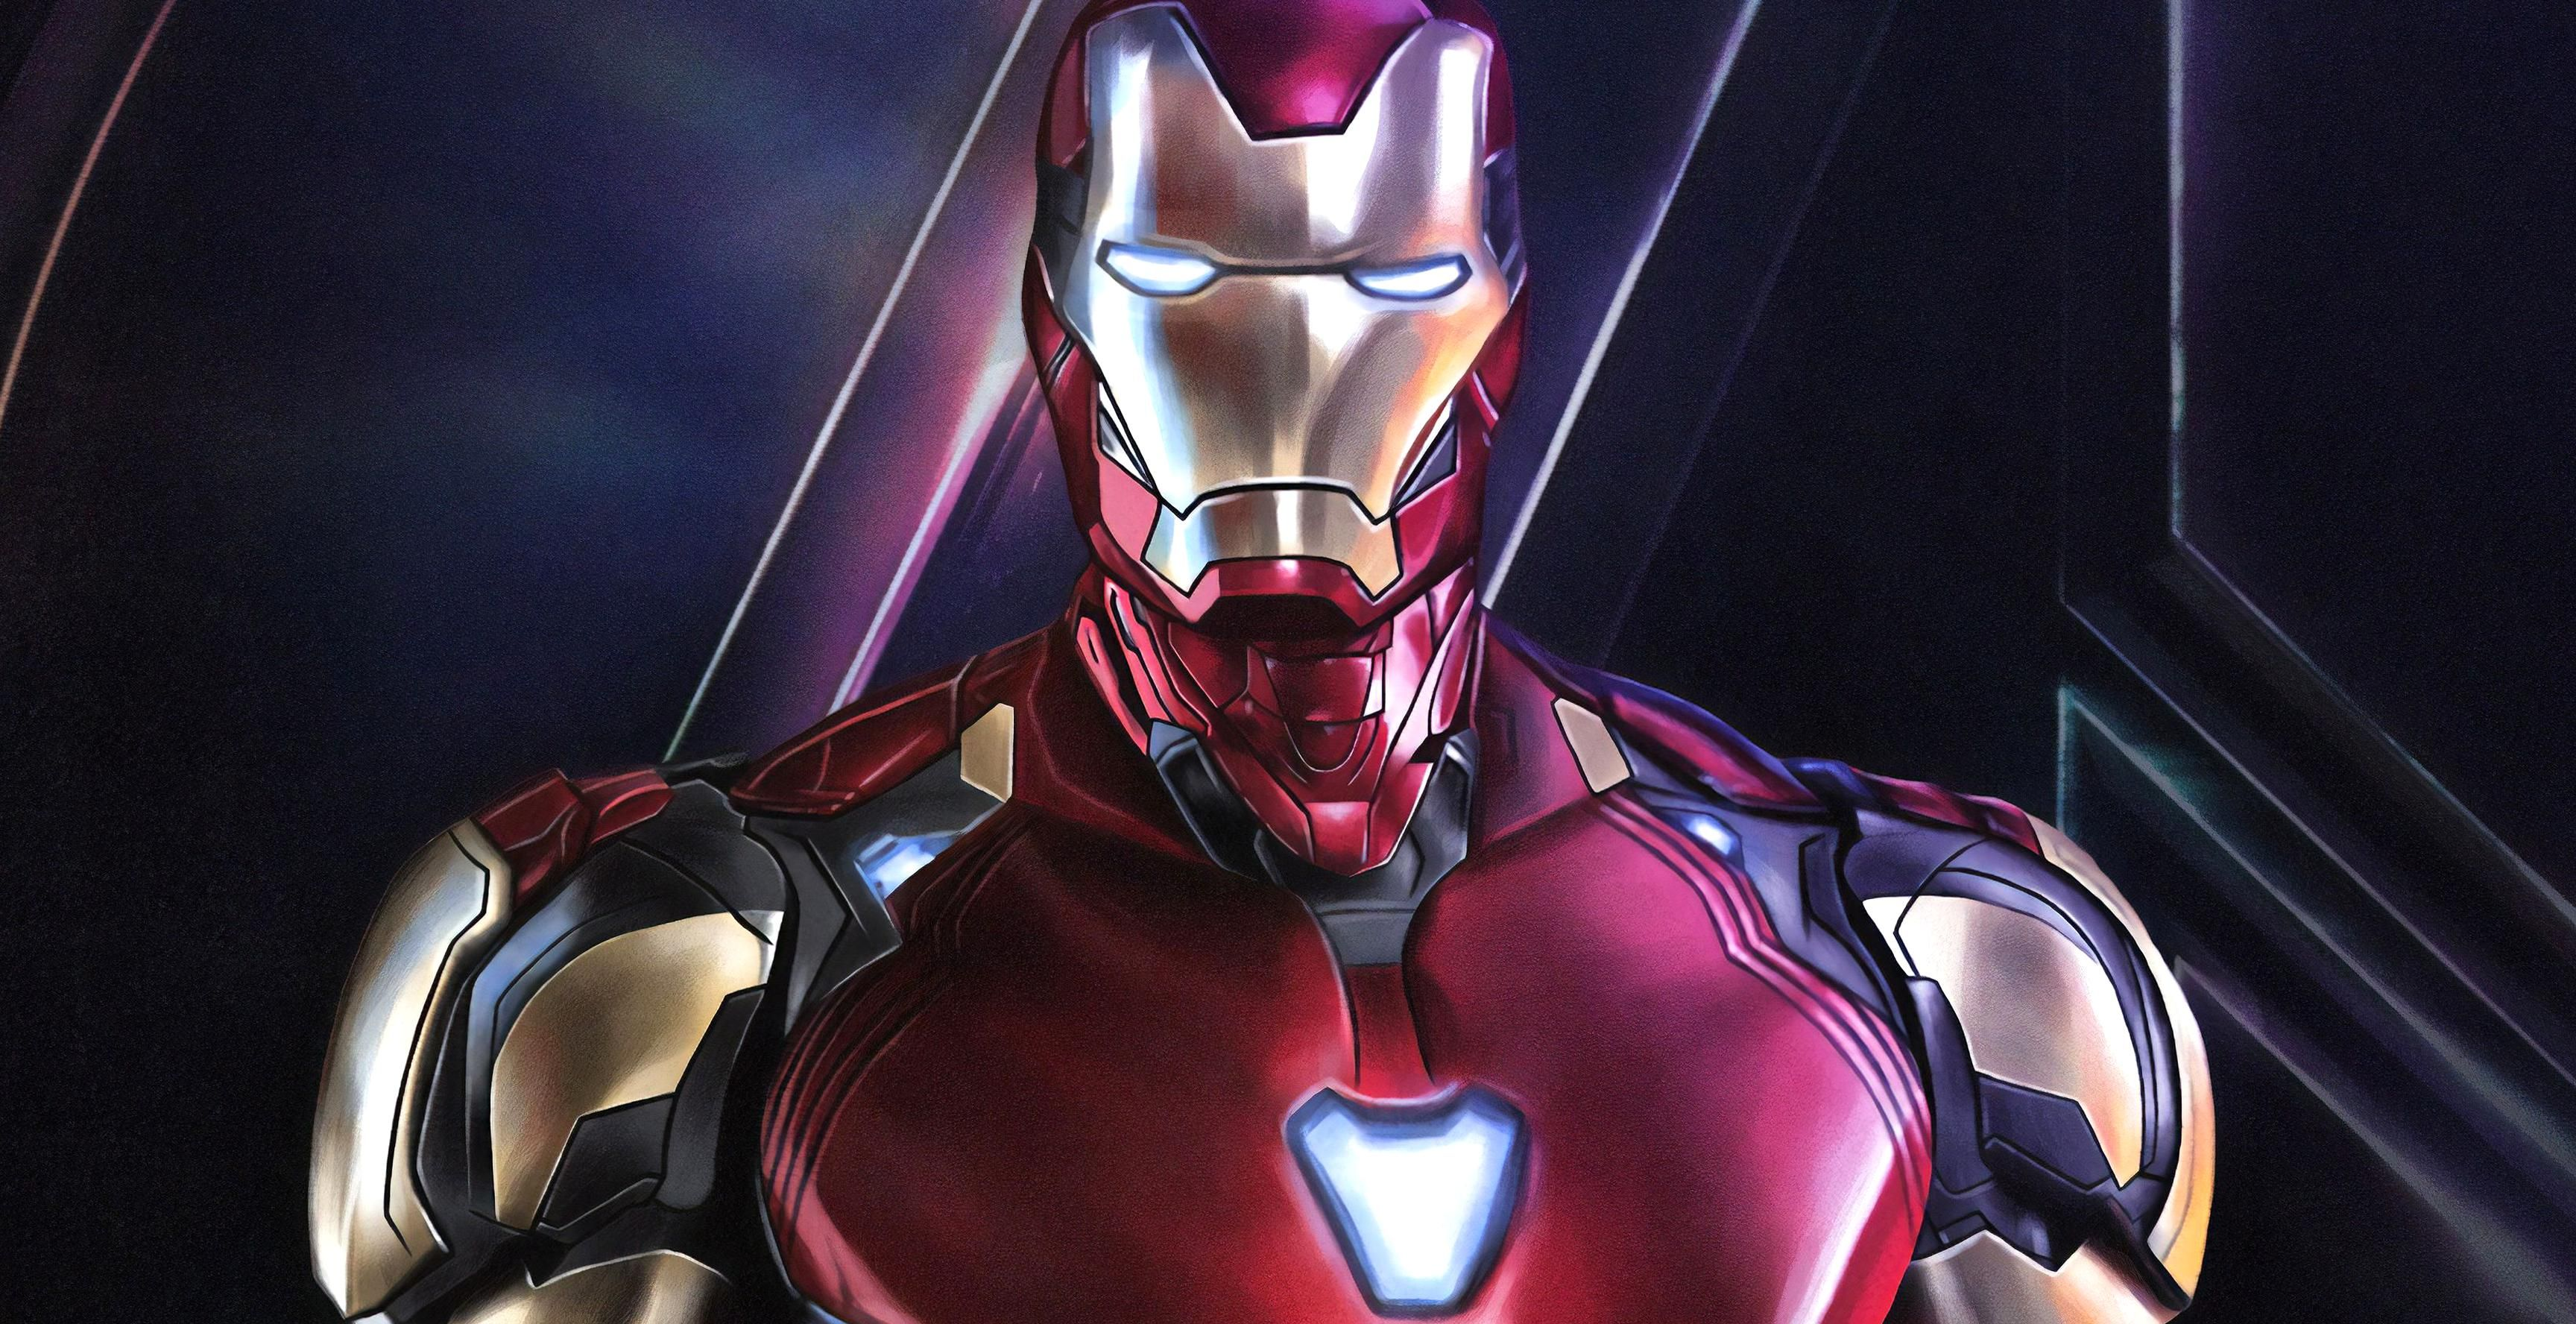 Best Of Iron Man Hd Wallpapers 1080p In Avengers Endgame Pictures In 2020 Iron Man Hd Wallpaper Iron Man Hd Wallpapers 1080p